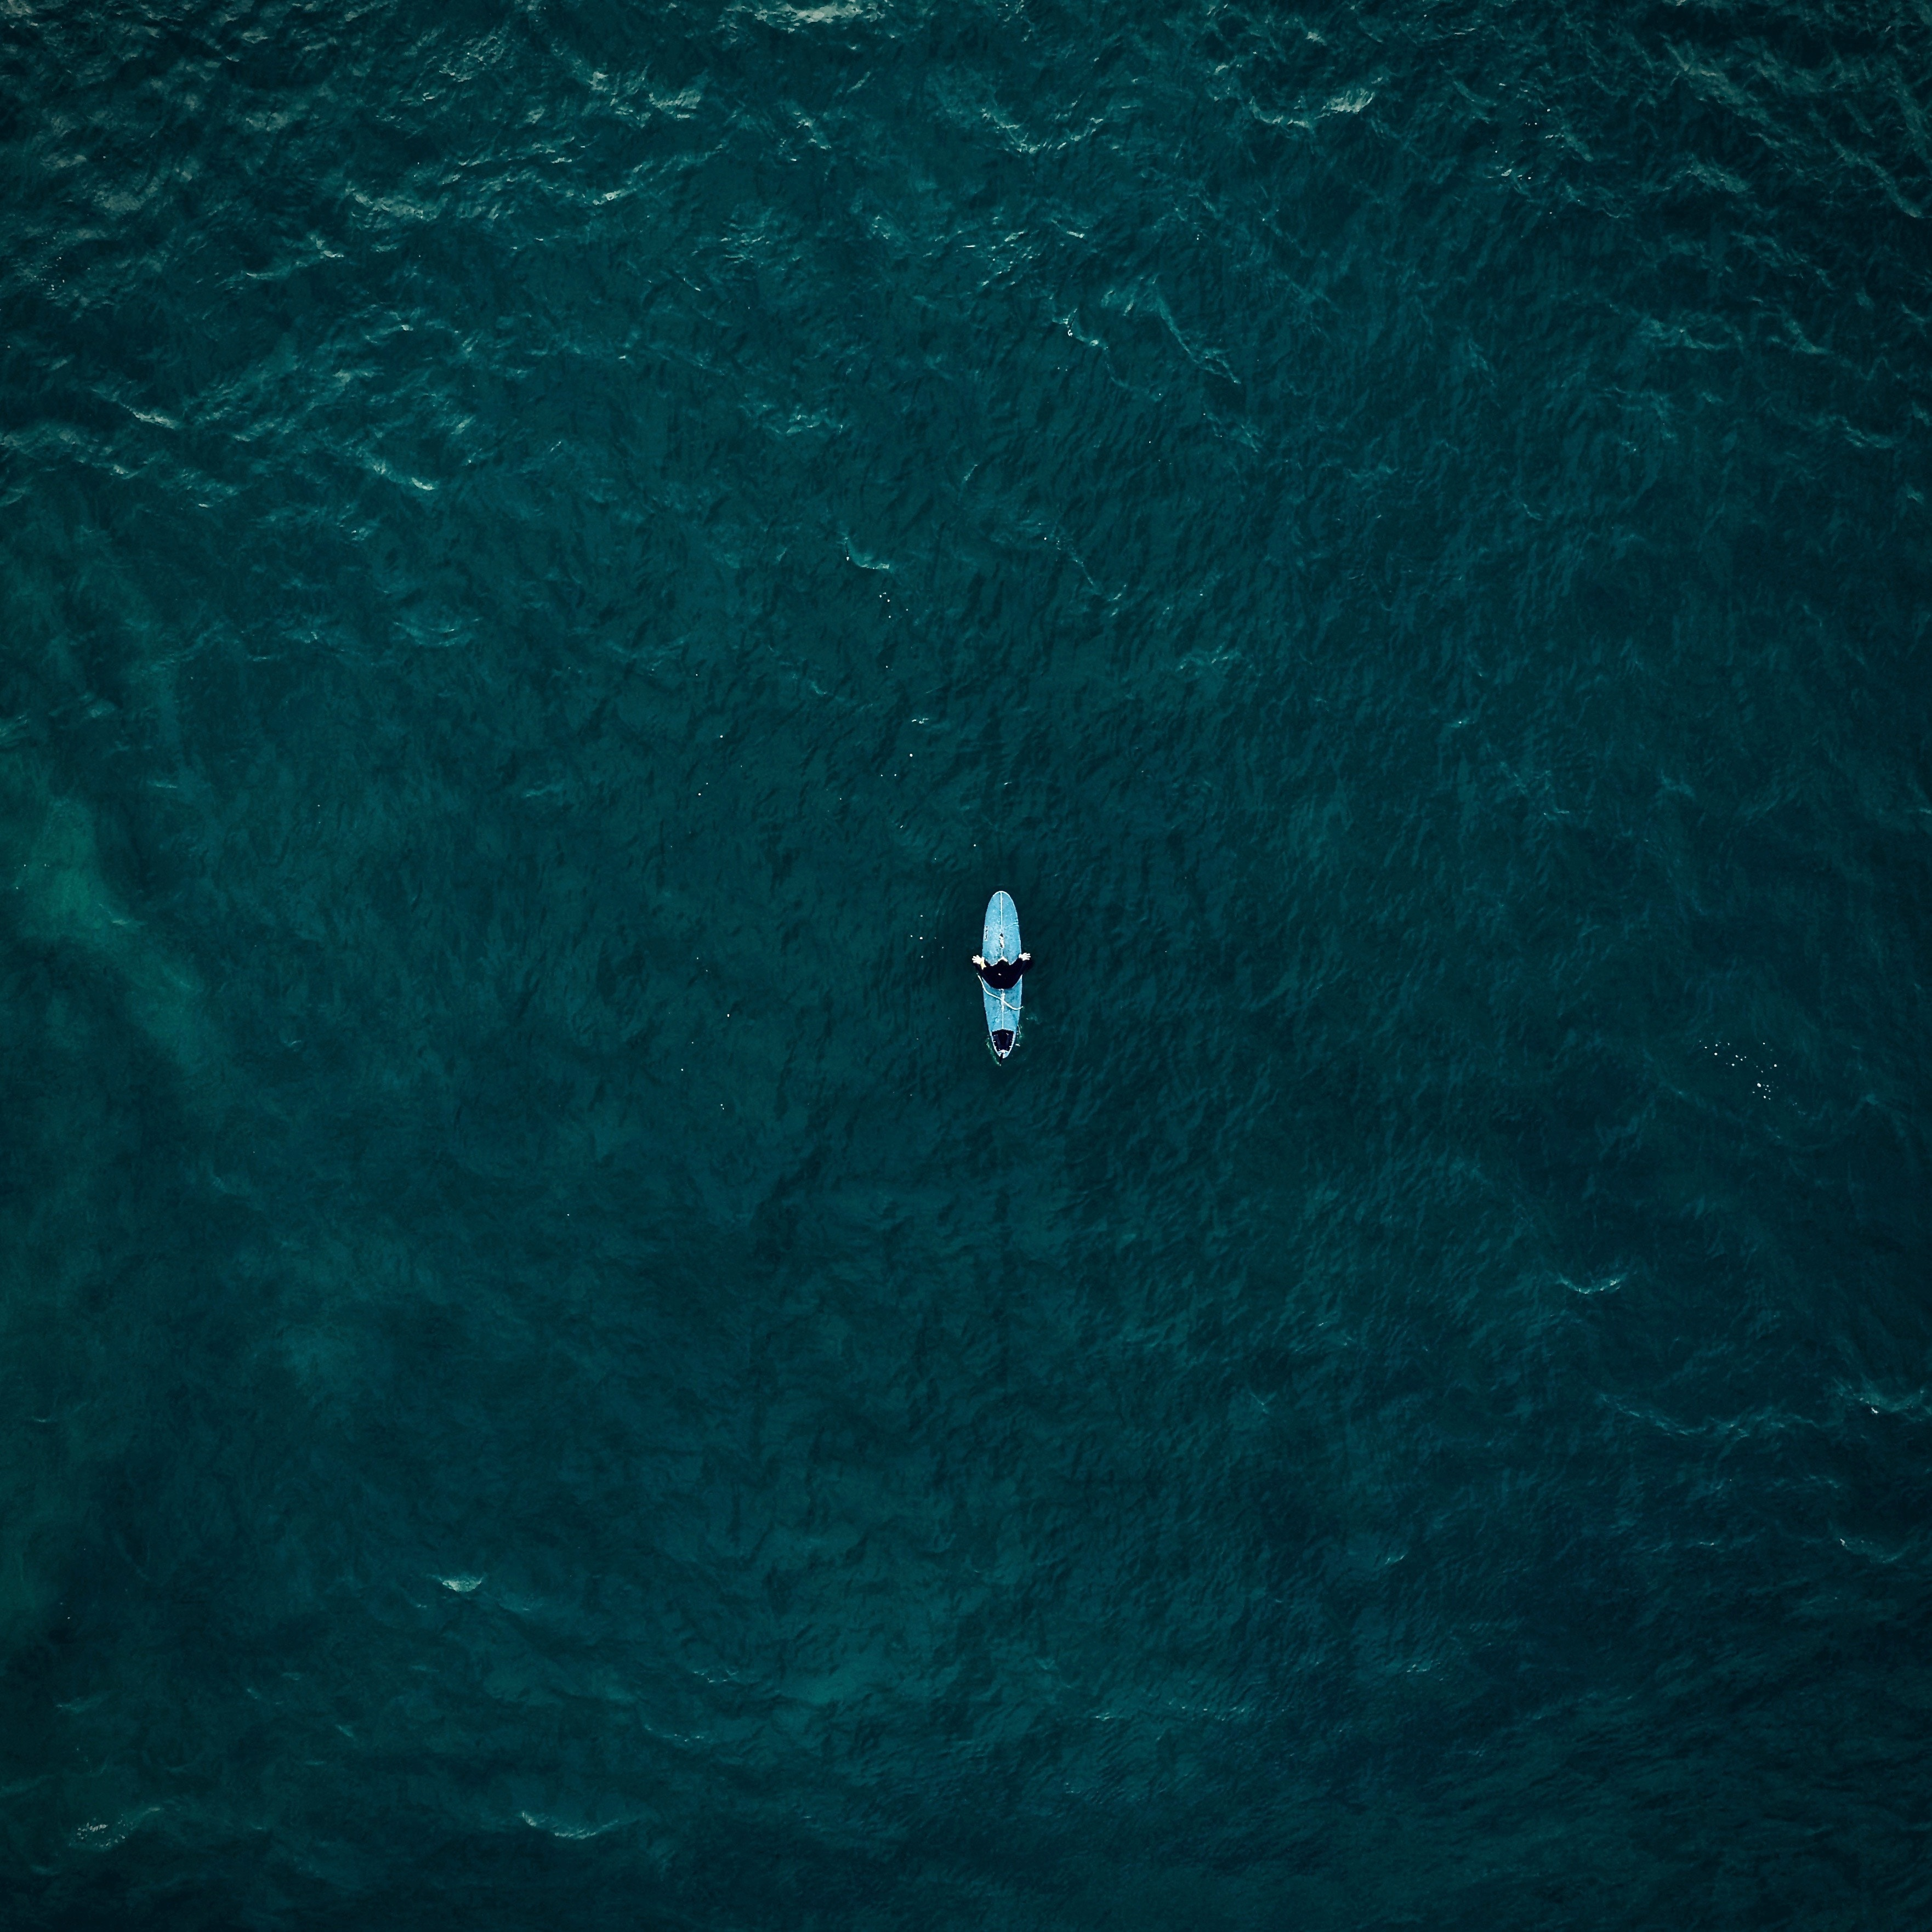 81064 download wallpaper Nature, Surfer, Serfing, View From Above, Ocean screensavers and pictures for free